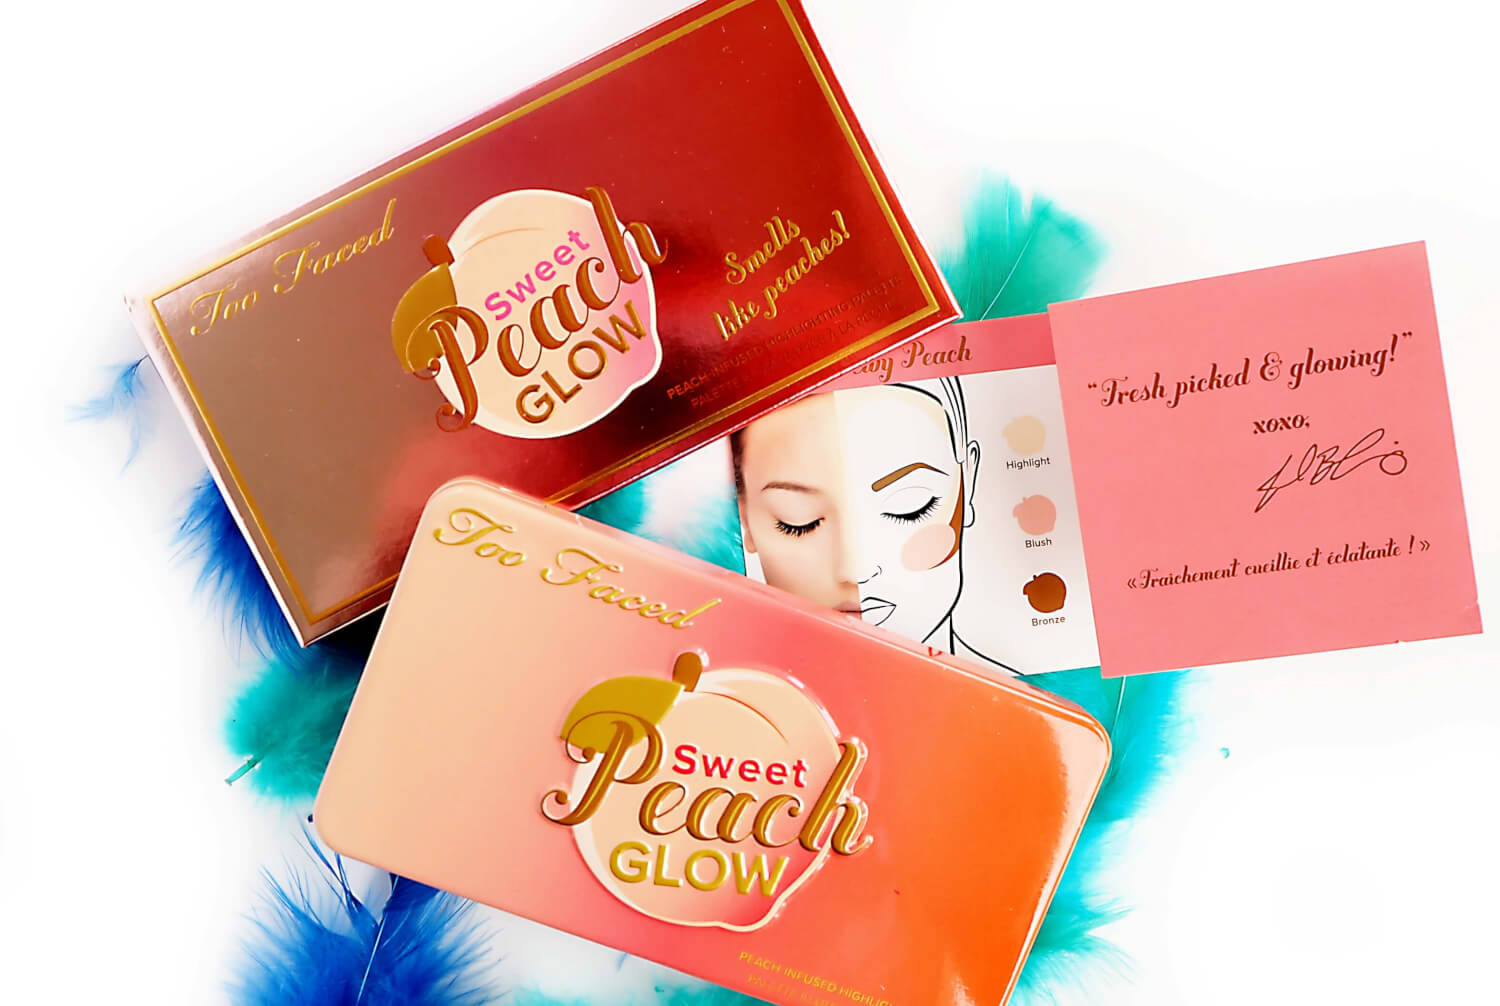 TOO FACED SWEET PEACH GLOW KIT